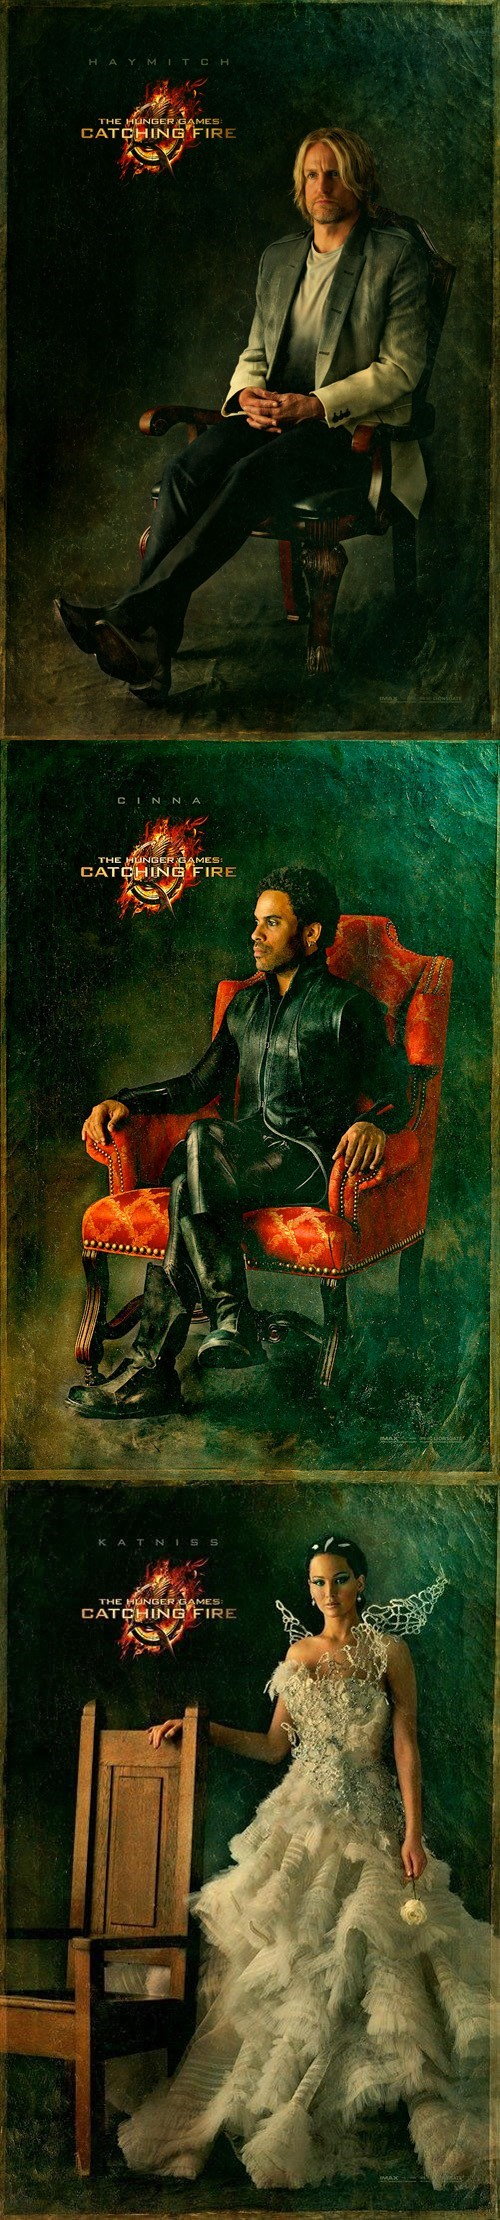 "Check Out These Fabulous ""Catching Fire"" Potraits"